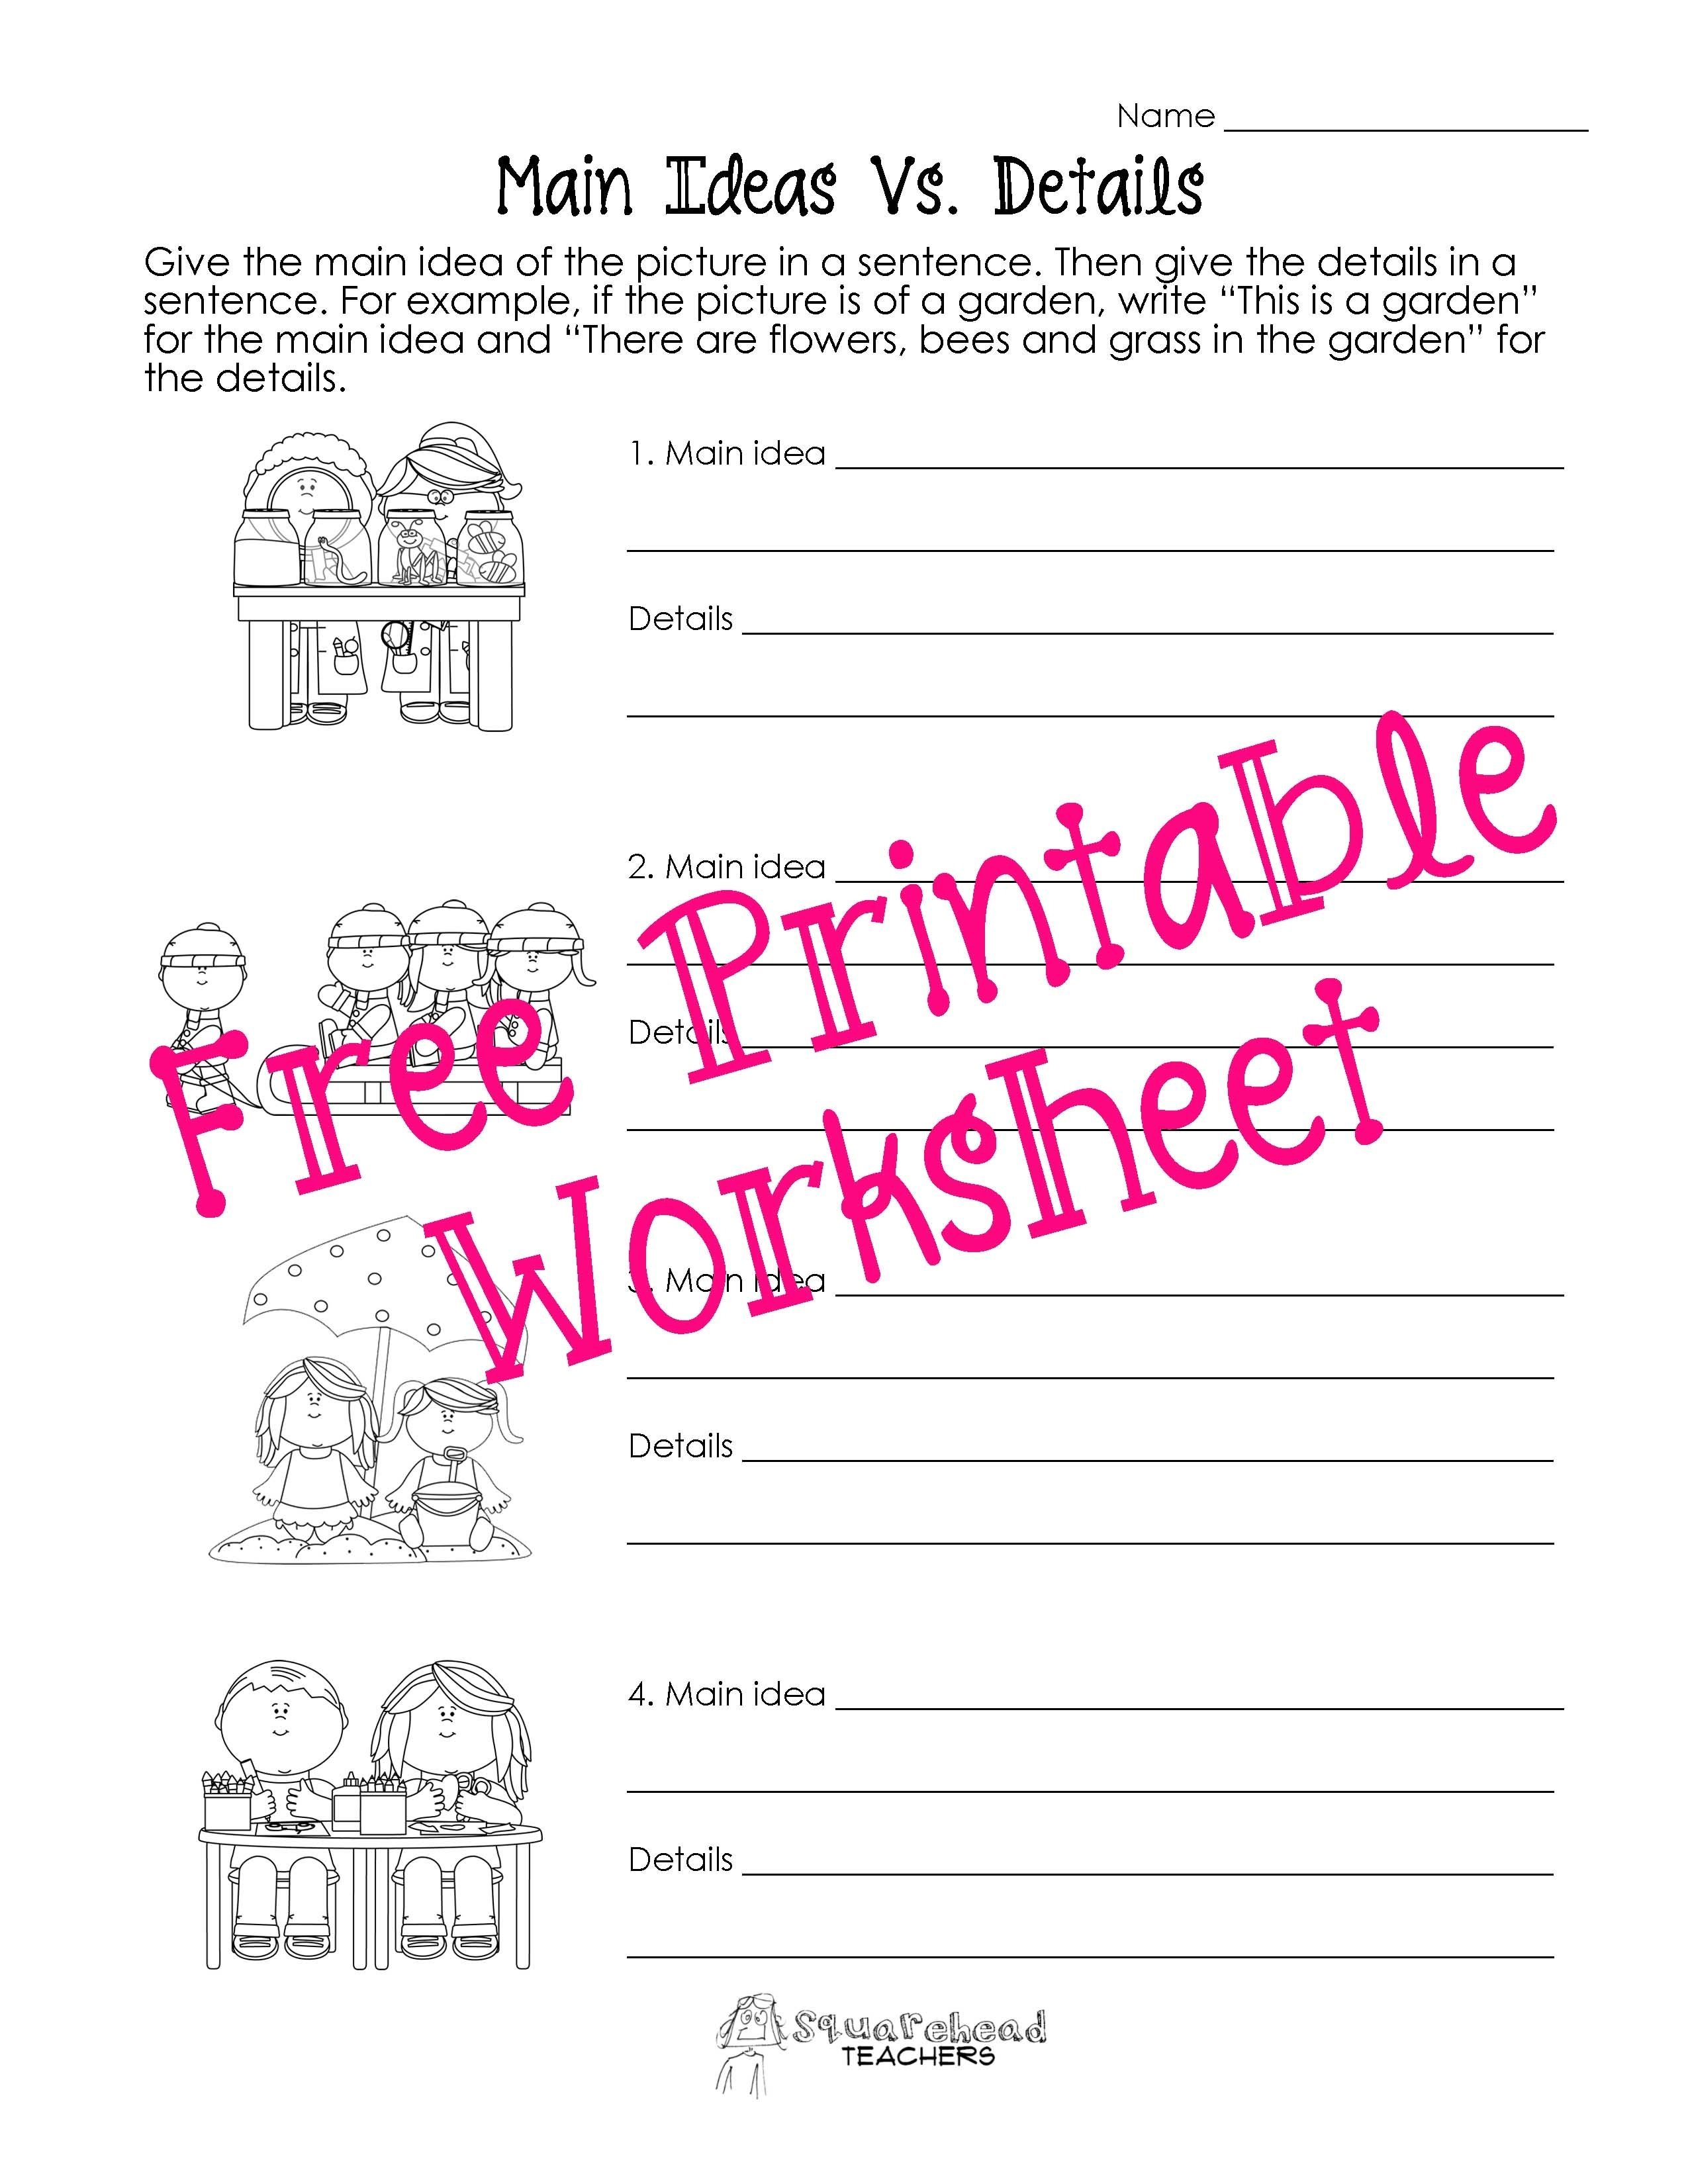 10 Attractive Main Idea And Details Worksheets main idea vs details worksheets squarehead teachers 4